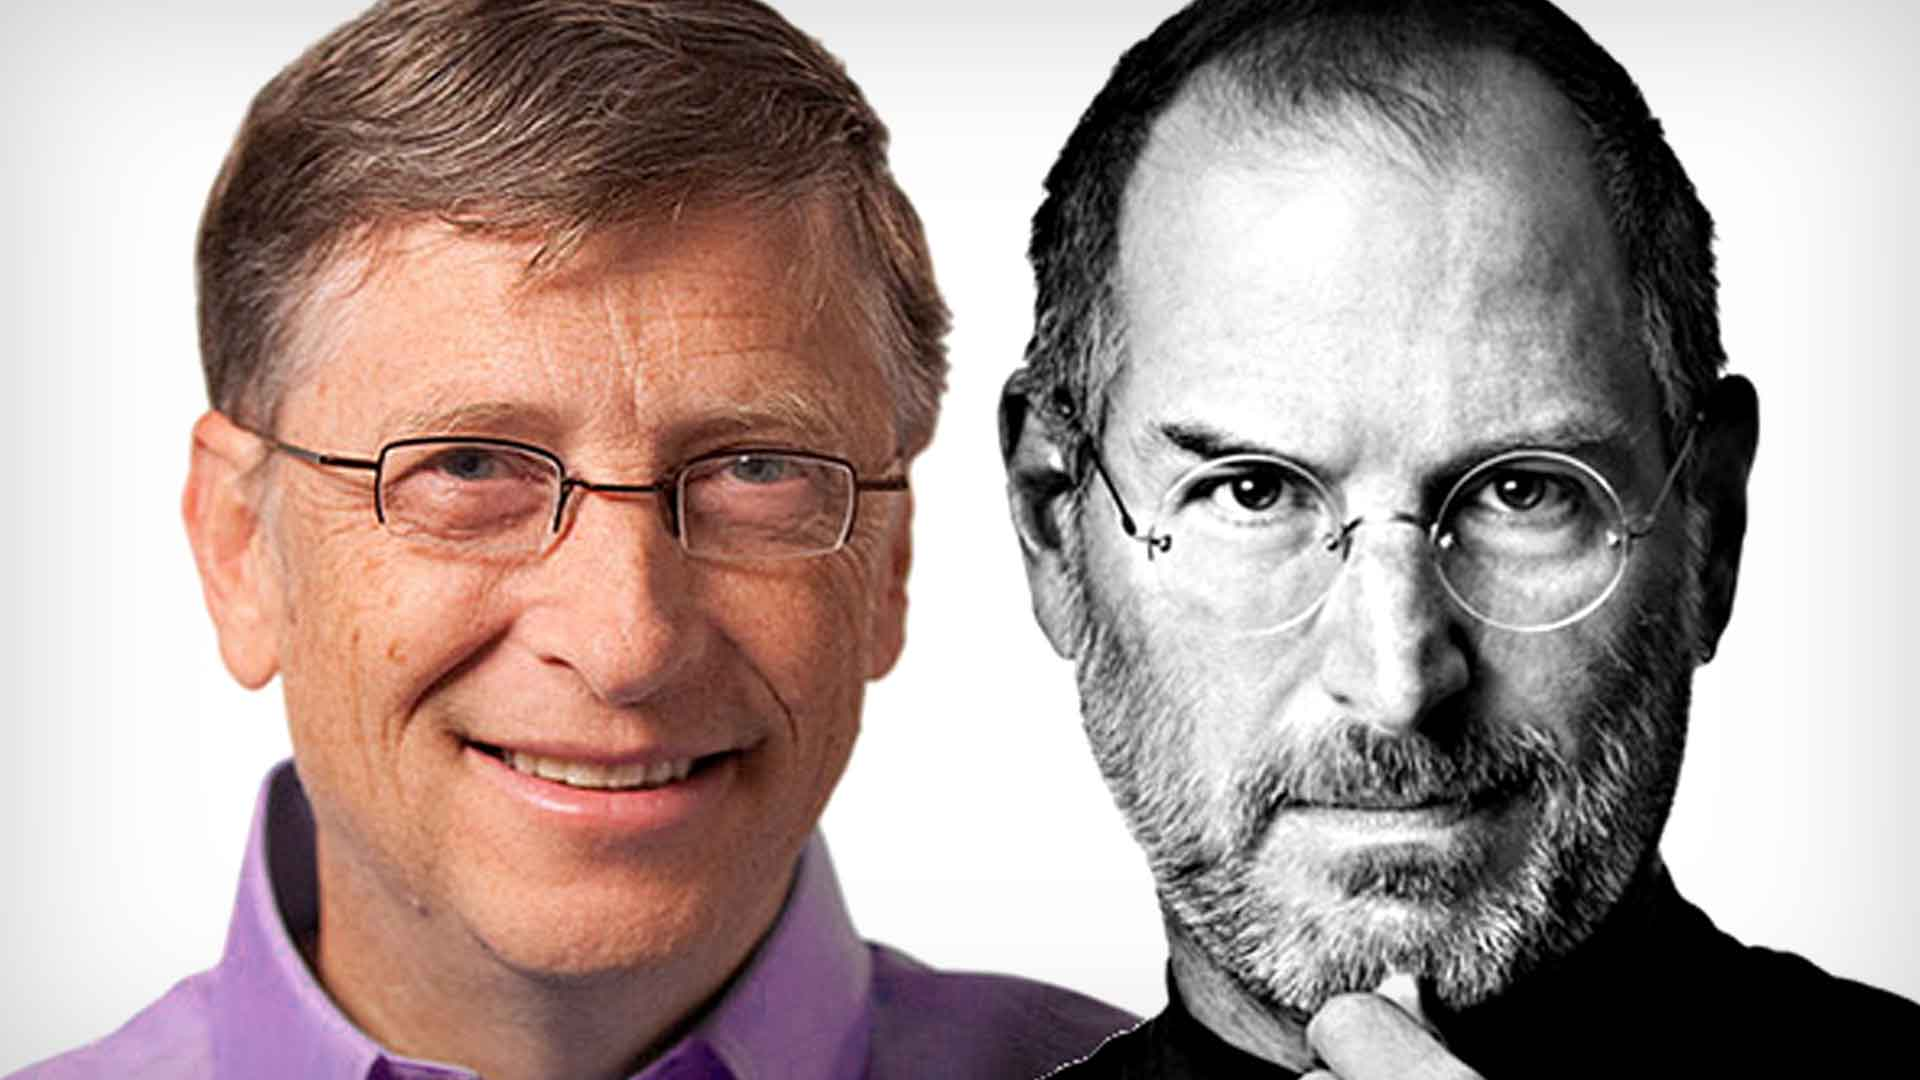 essay on steve jobs and bill gates As an innovator and visionary, steve jobs' accomplishments can be held on a pedestal with the likes of microsoft's bill gates, google's larry page and sergey brin and facebook's mark zuckerberg.